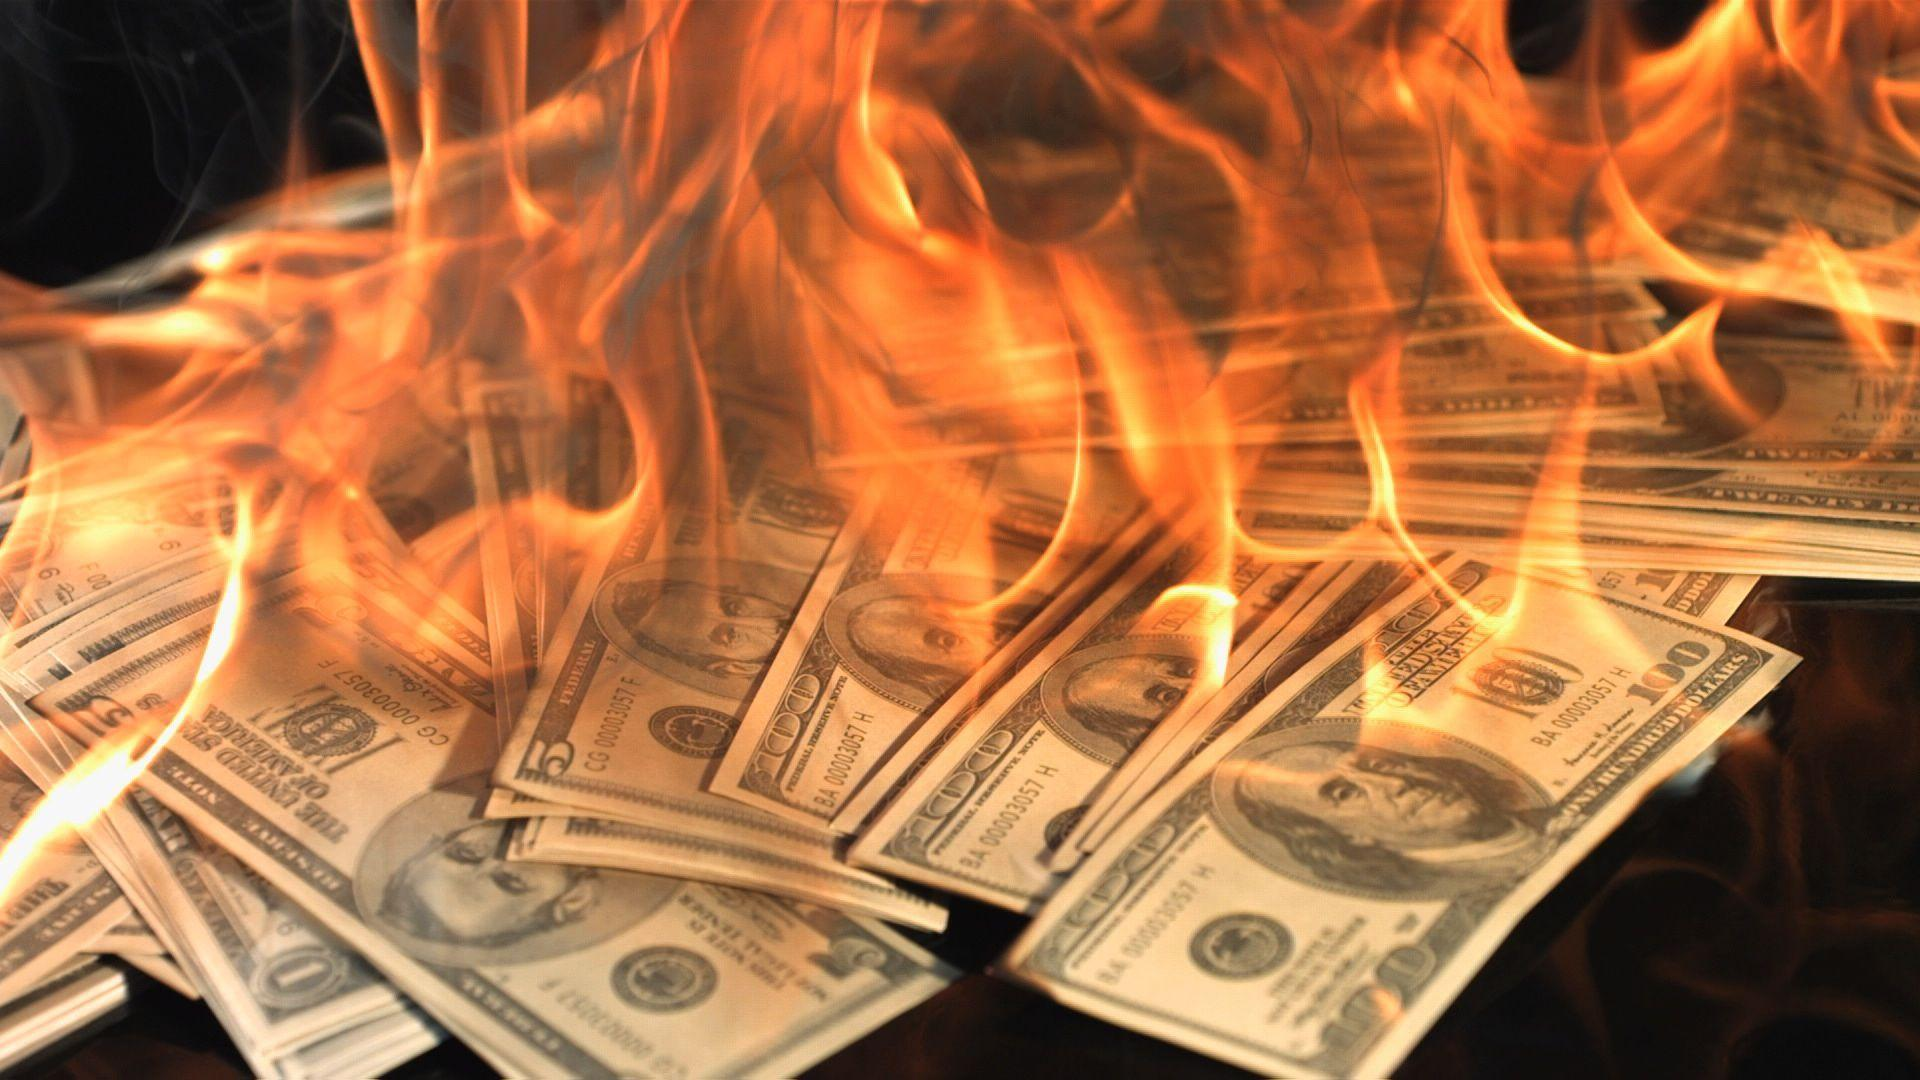 Burning money Live wallpapers for Android   APK Download 1920x1080